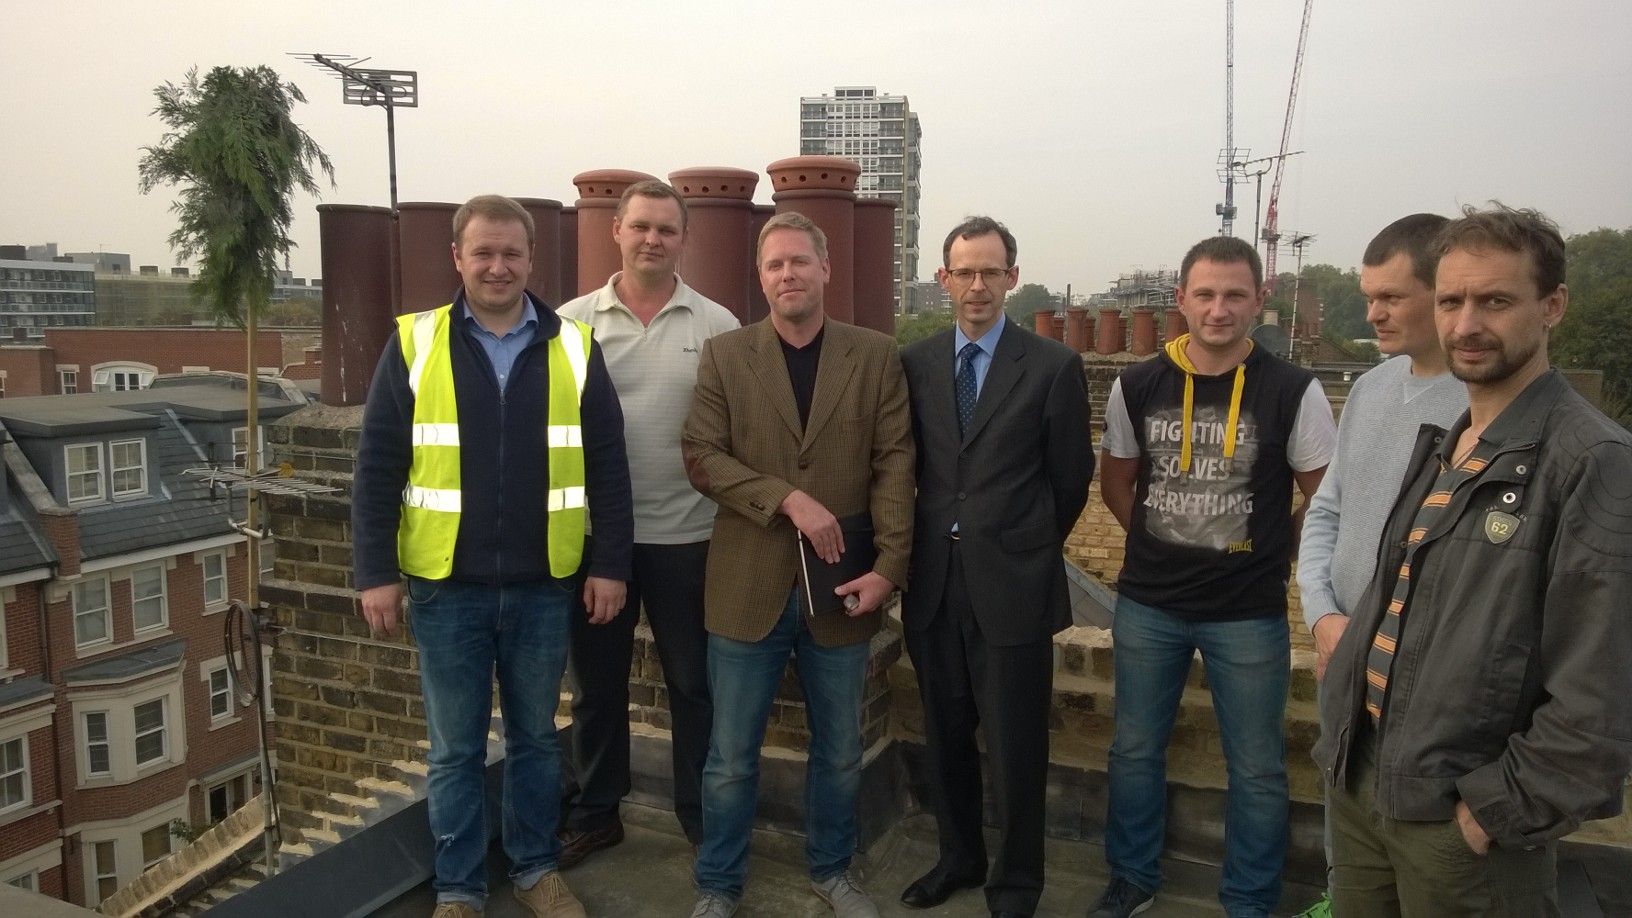 Hugo Hardy Took this opportunity to say thank you to StemandAgate the contractors on the works in Battersea.